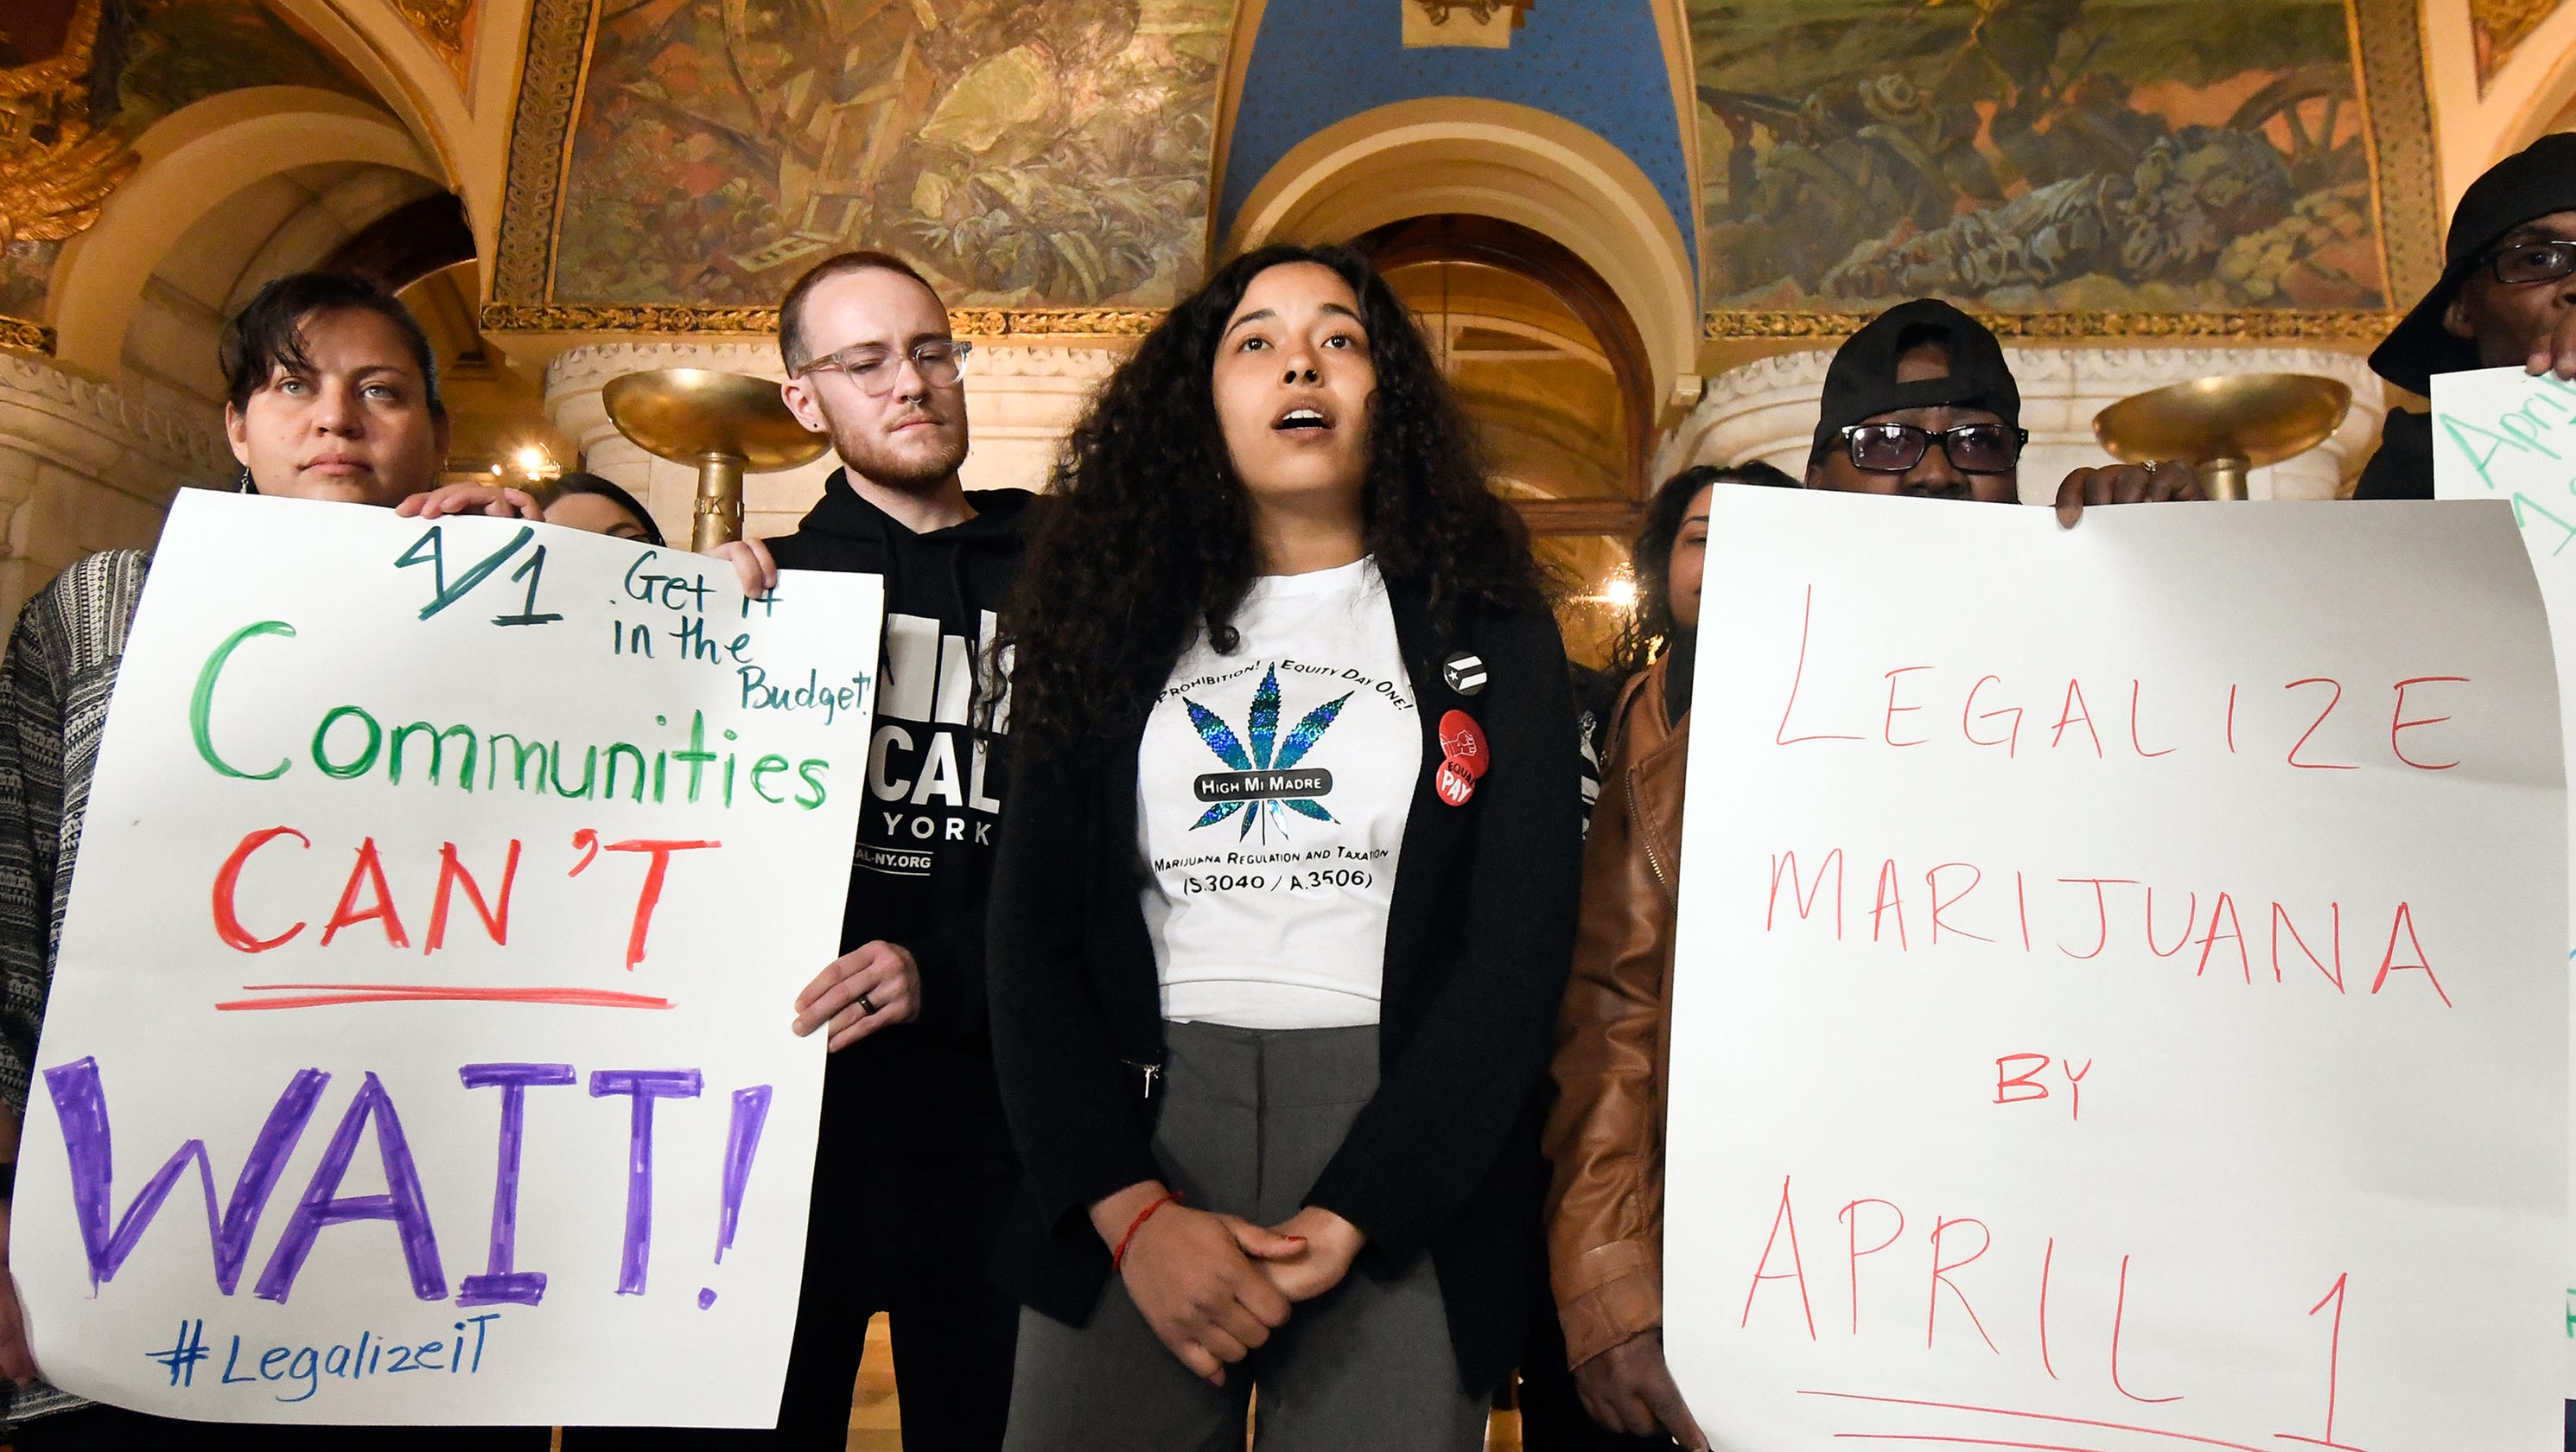 Legalized marijuana in New York will have to wait